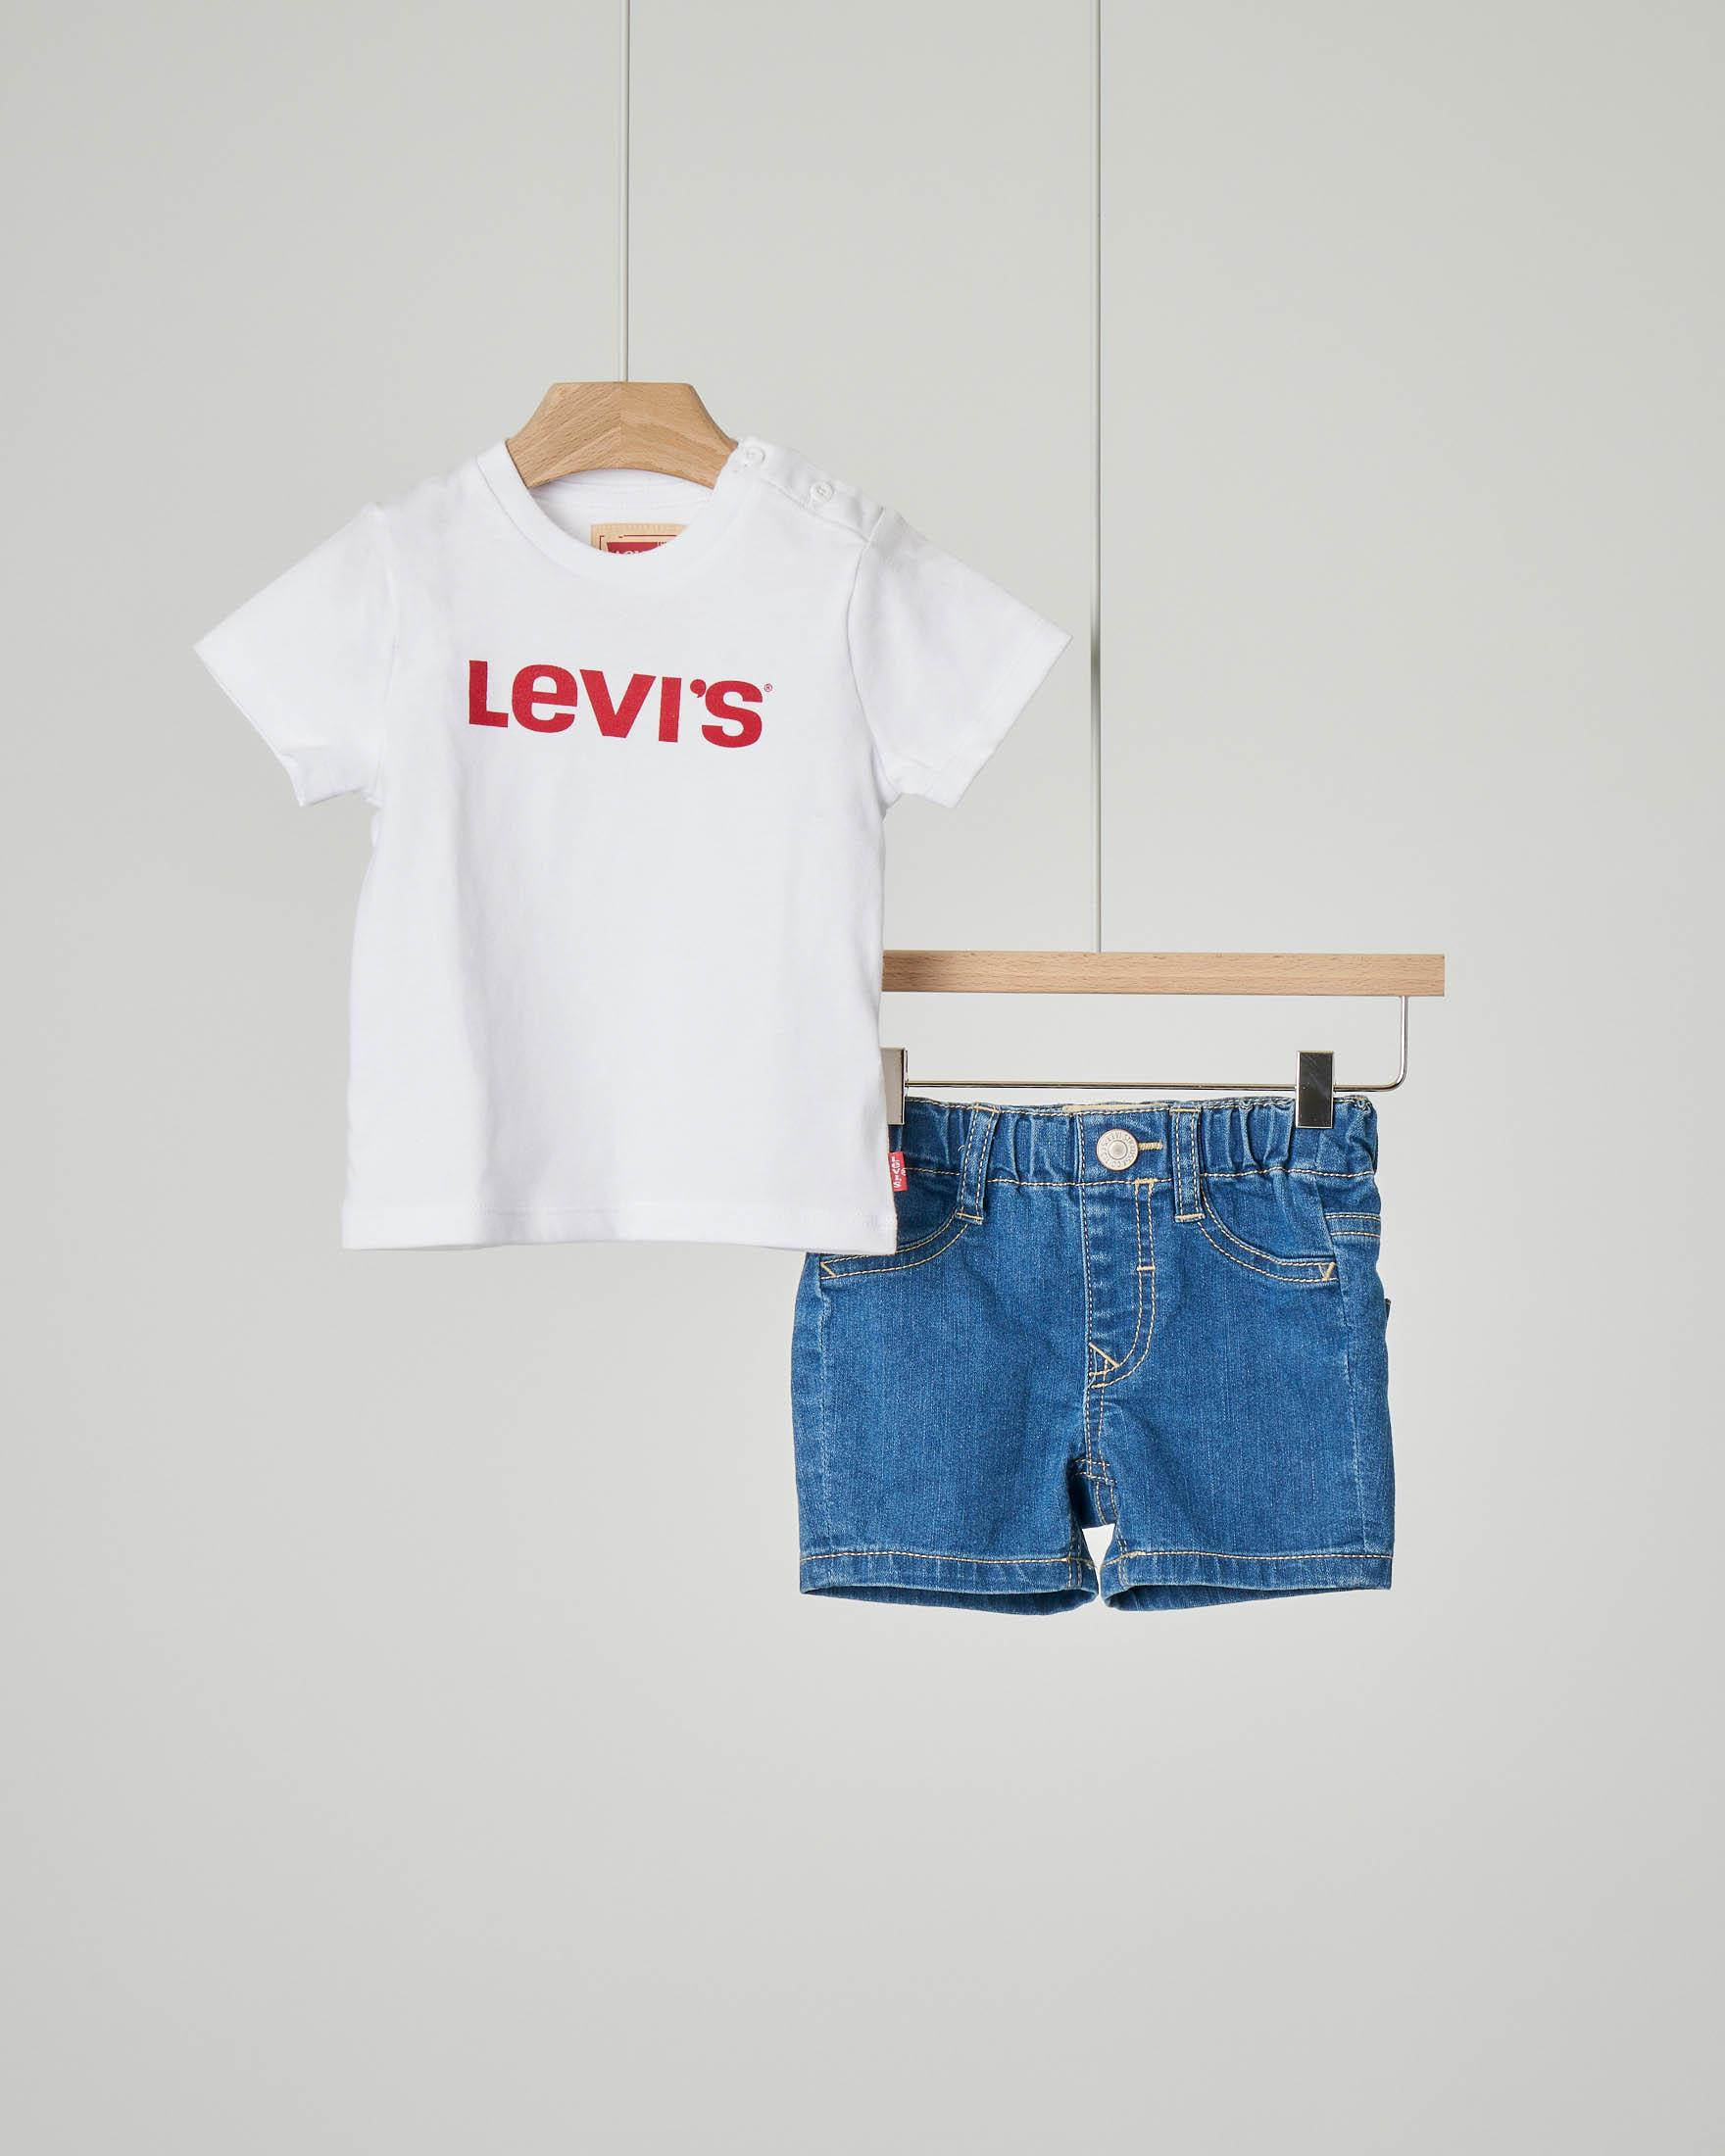 Completo t-shirt bianca e bermuda in denim